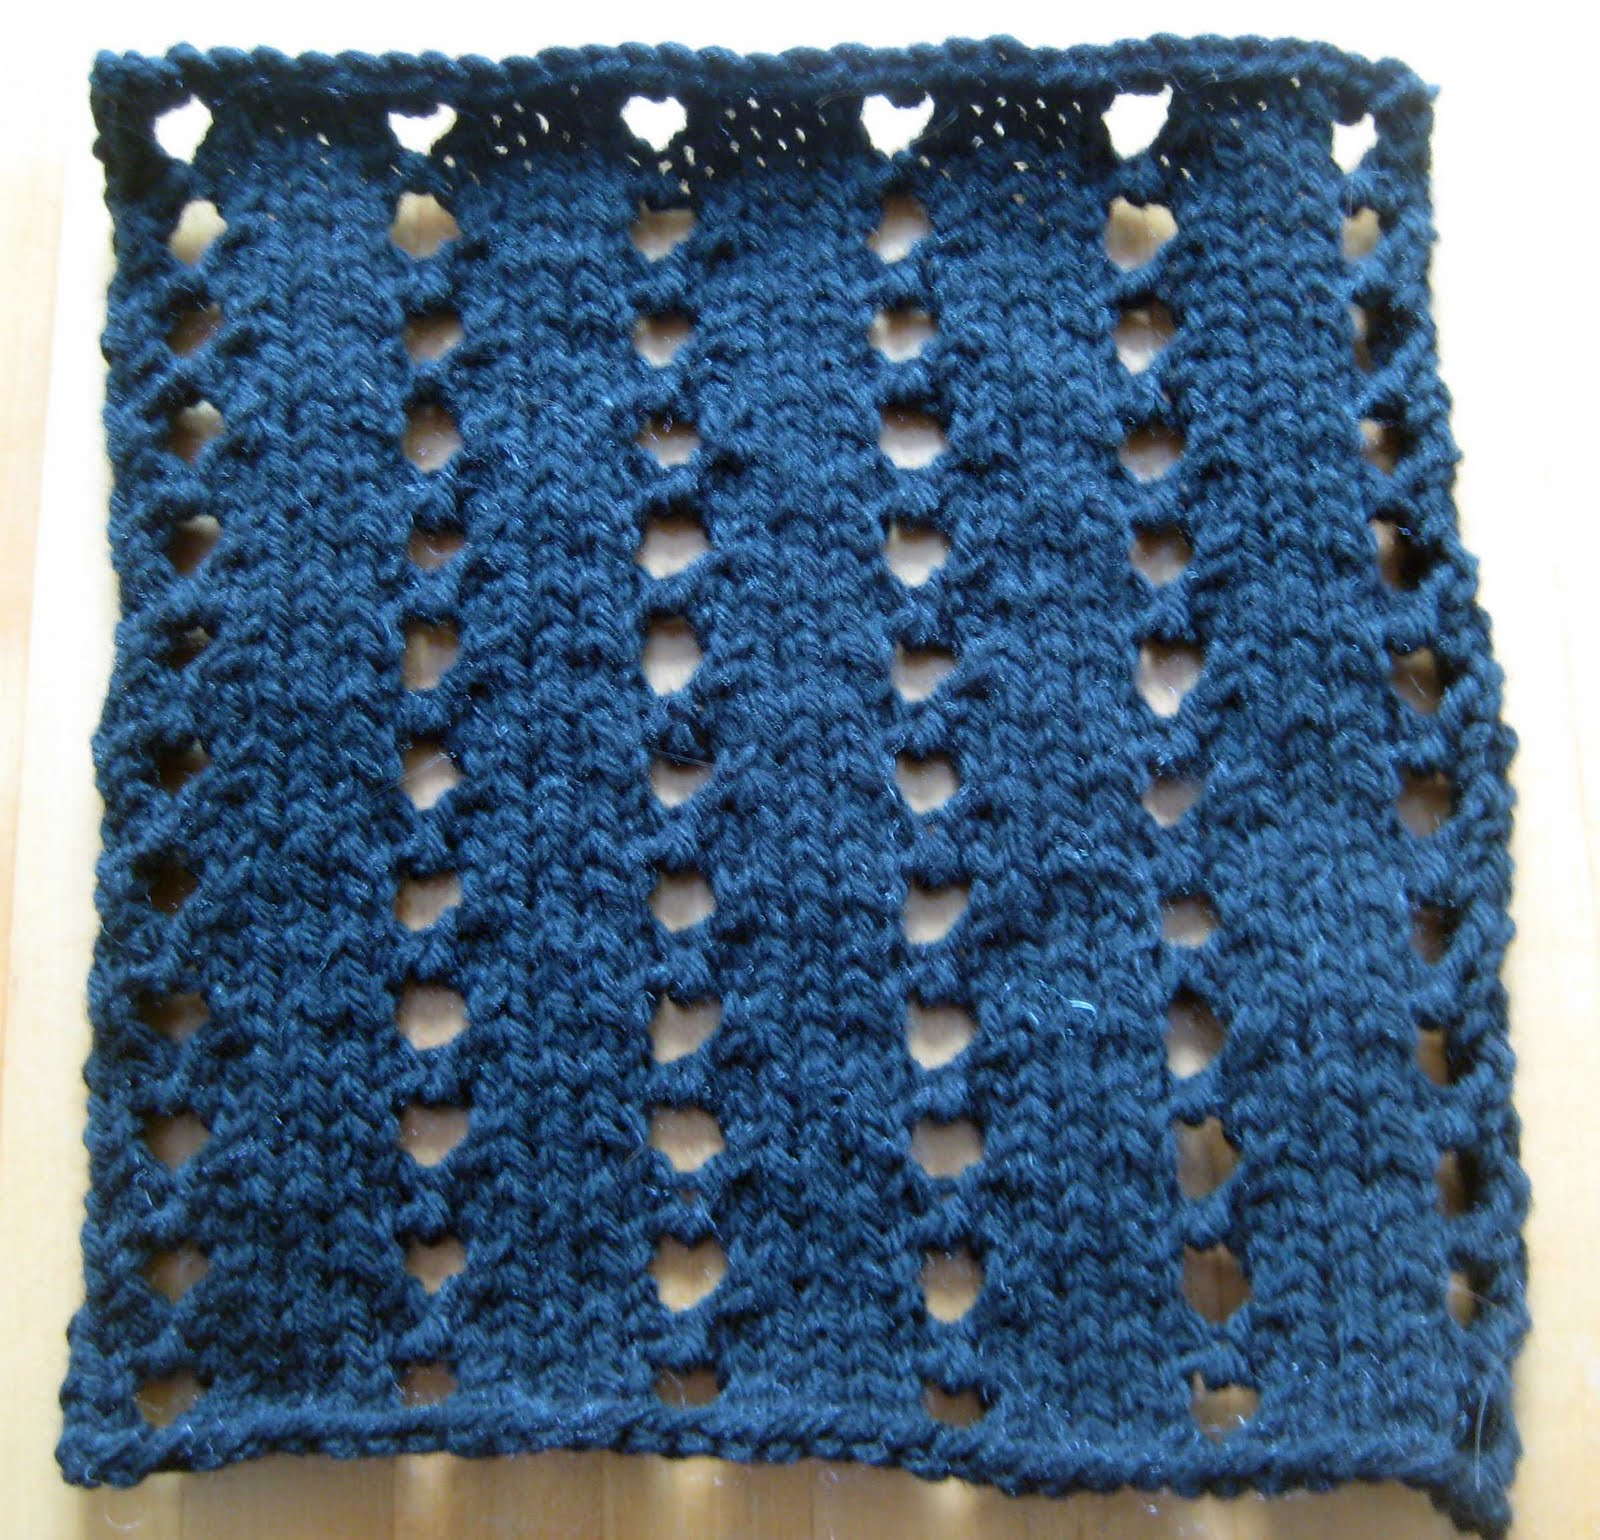 ChemKnits: Free Patterns by ChemKnits Summary